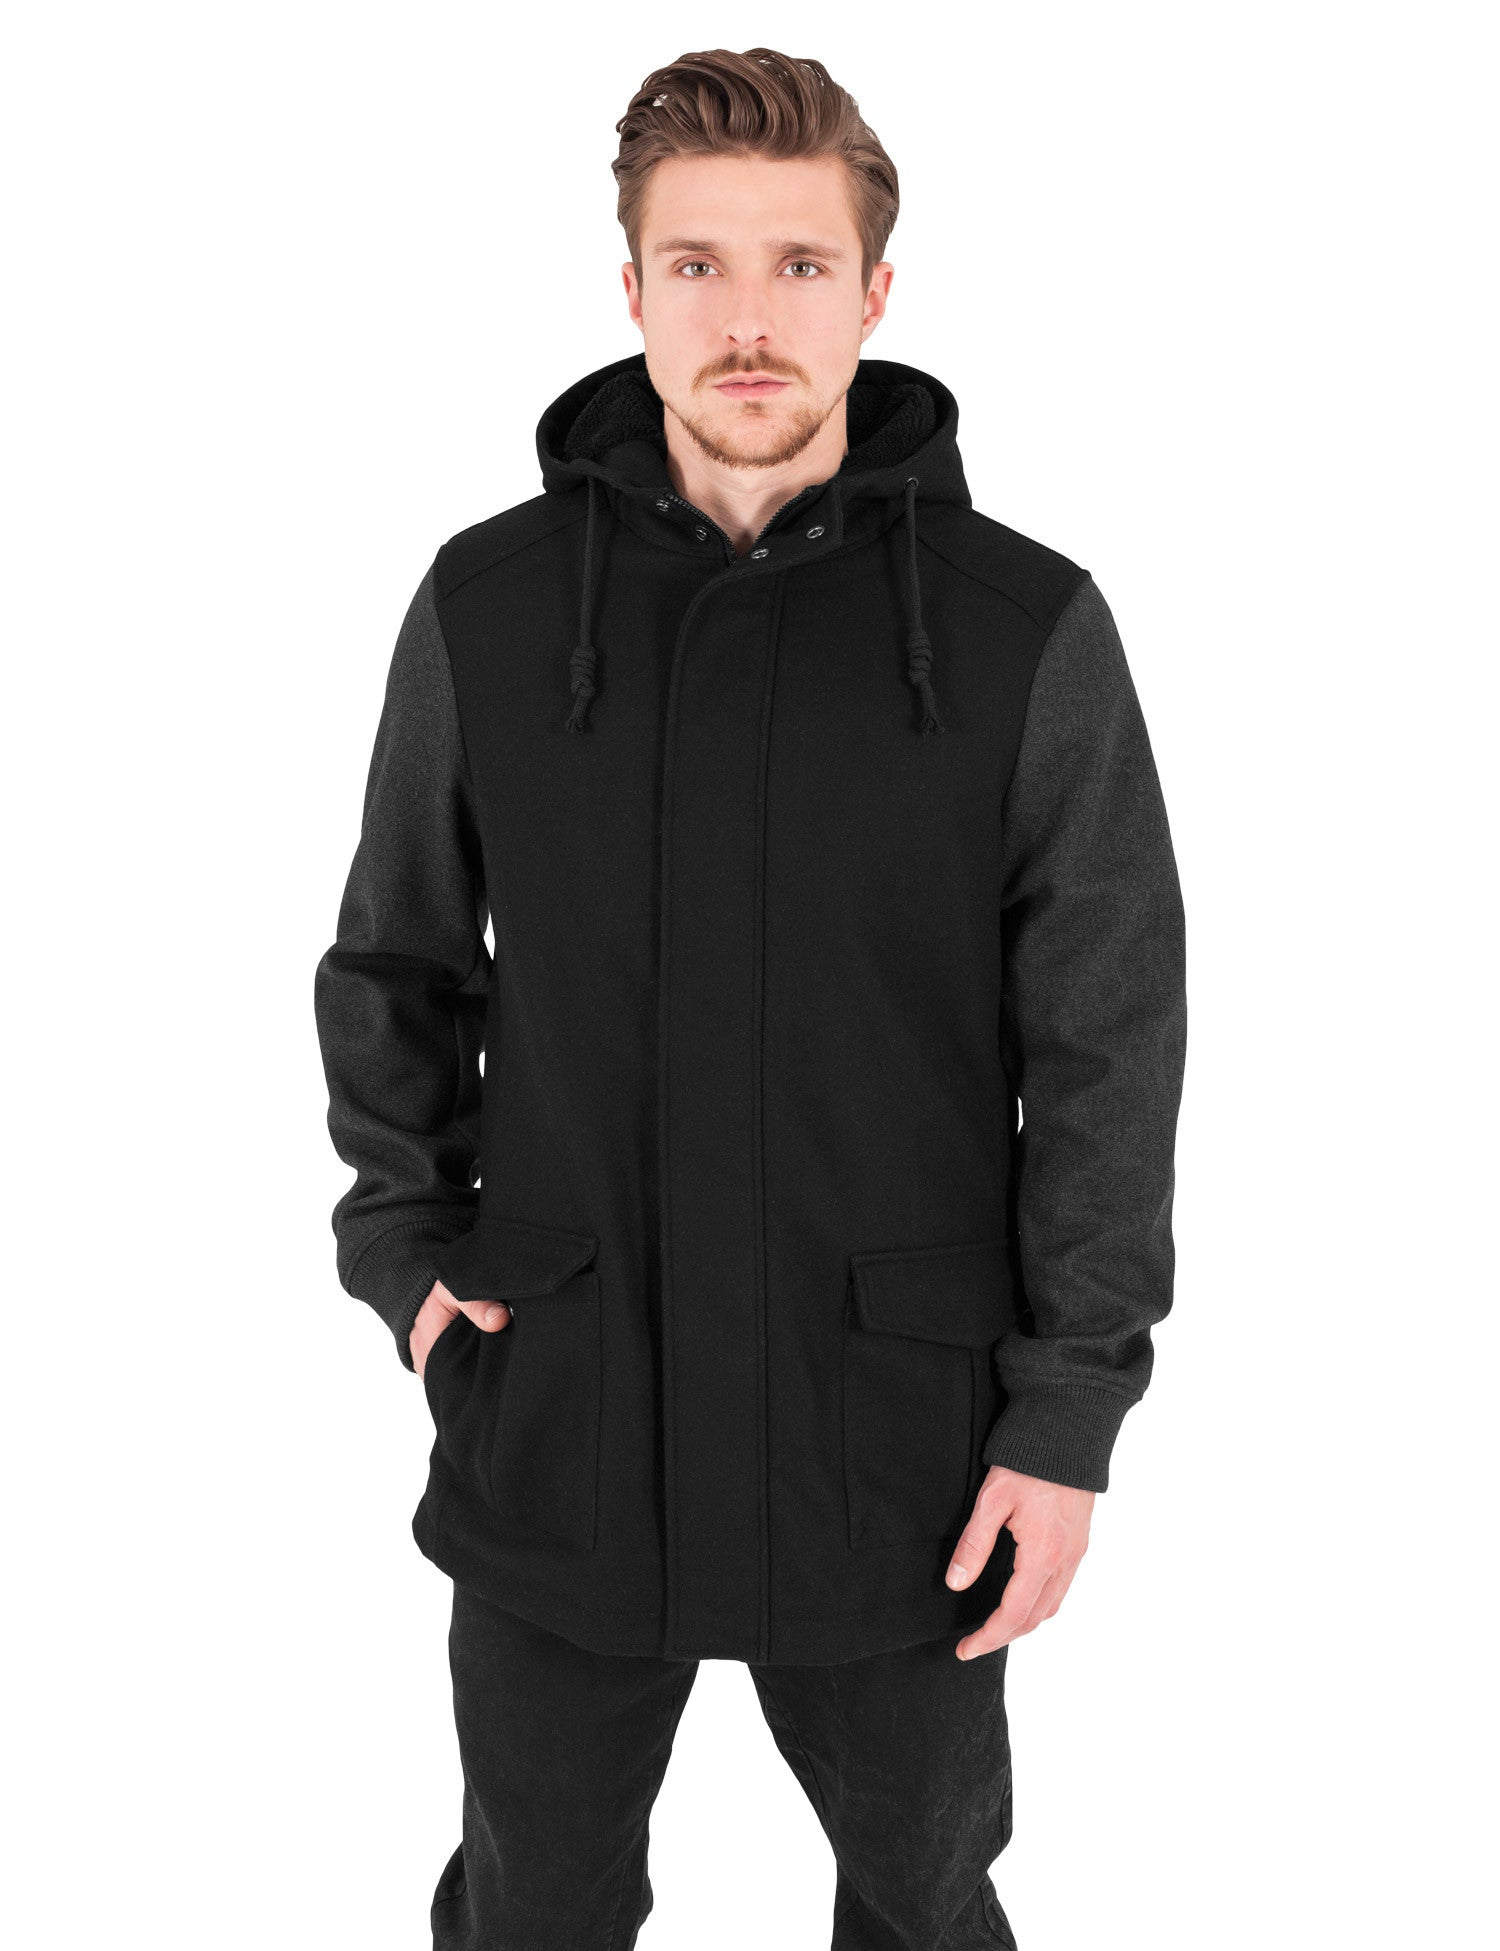 Contrast Hooded Wool Jacket TB1161 Black